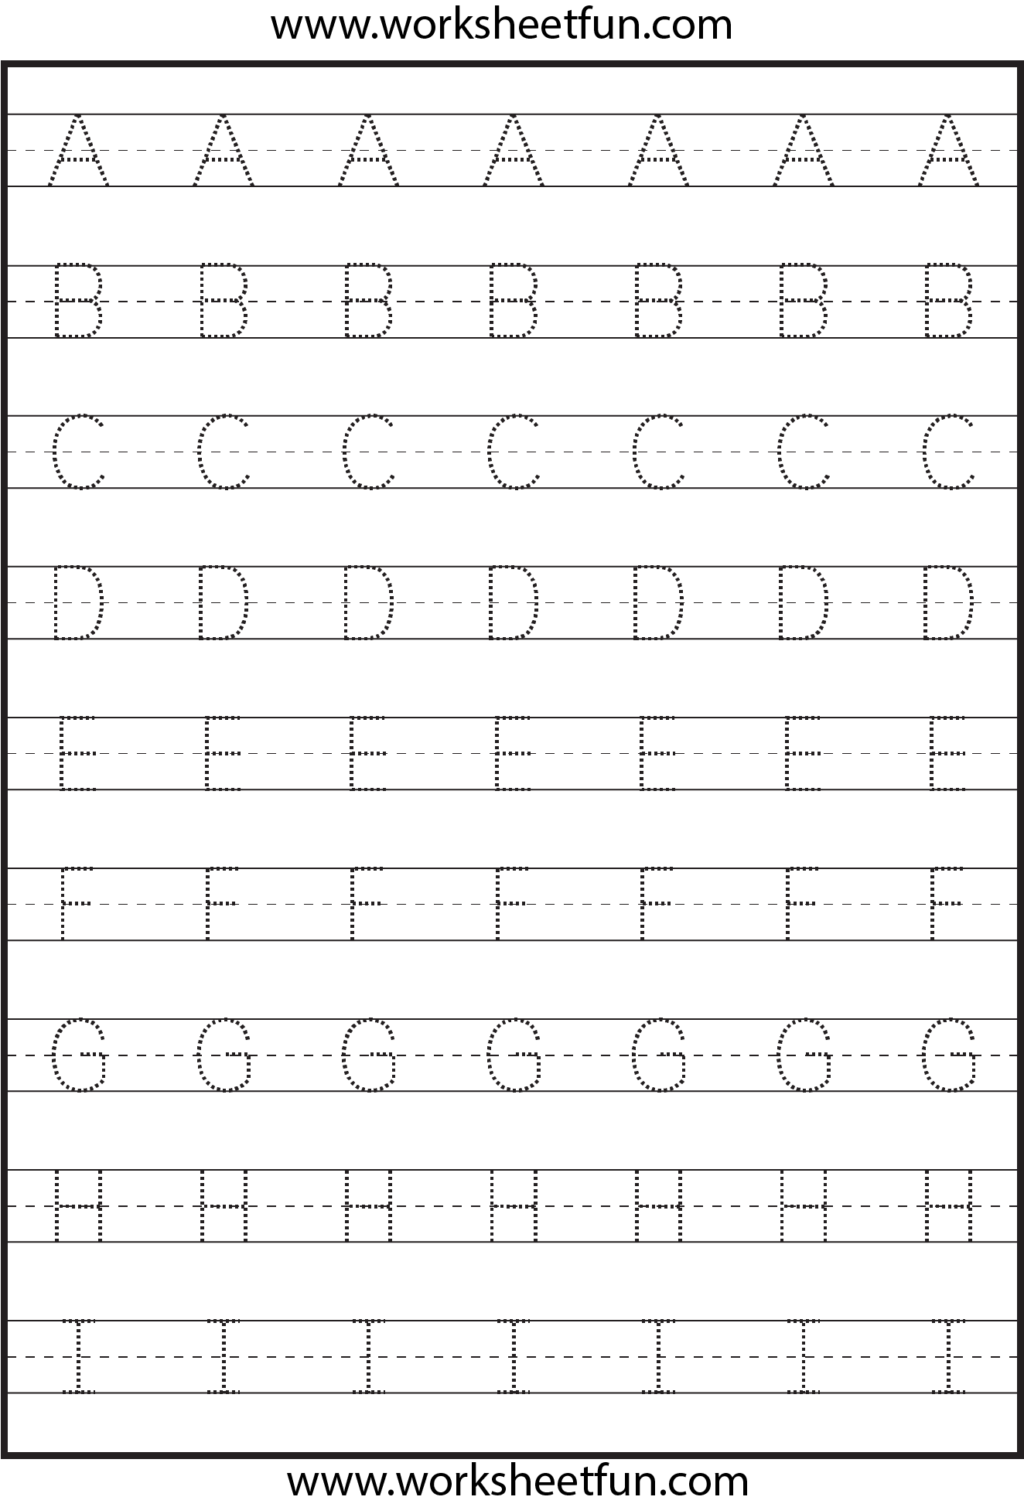 Worksheet ~ Tracing Uppercase Letters Capital Worksheets